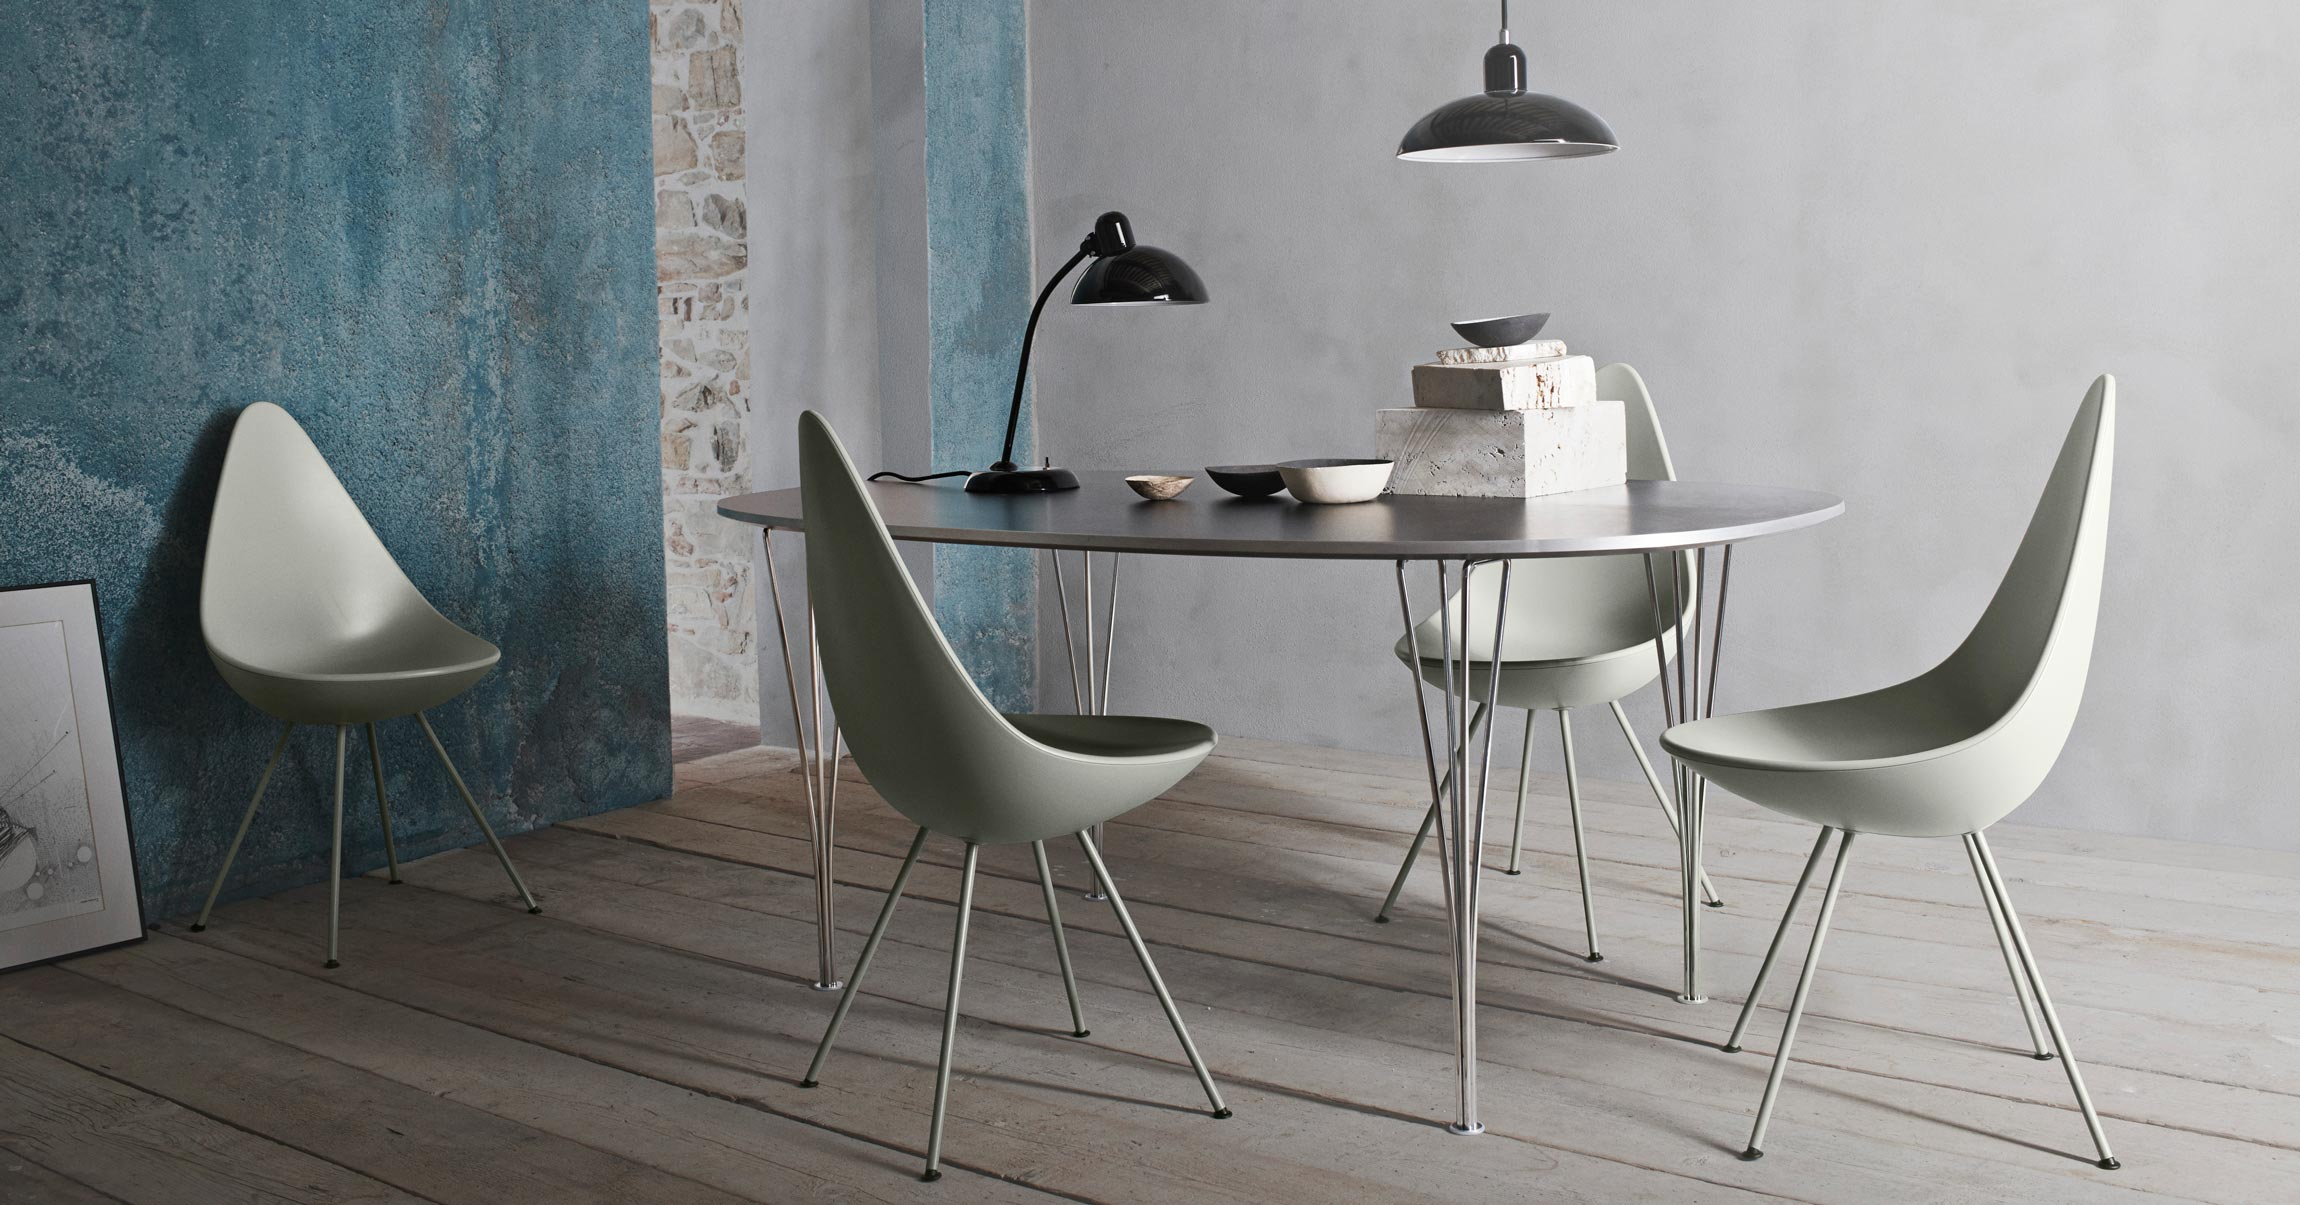 Fritz Hansen Drop Chairs Stone Grey with Kaiser Idell Table Lamp